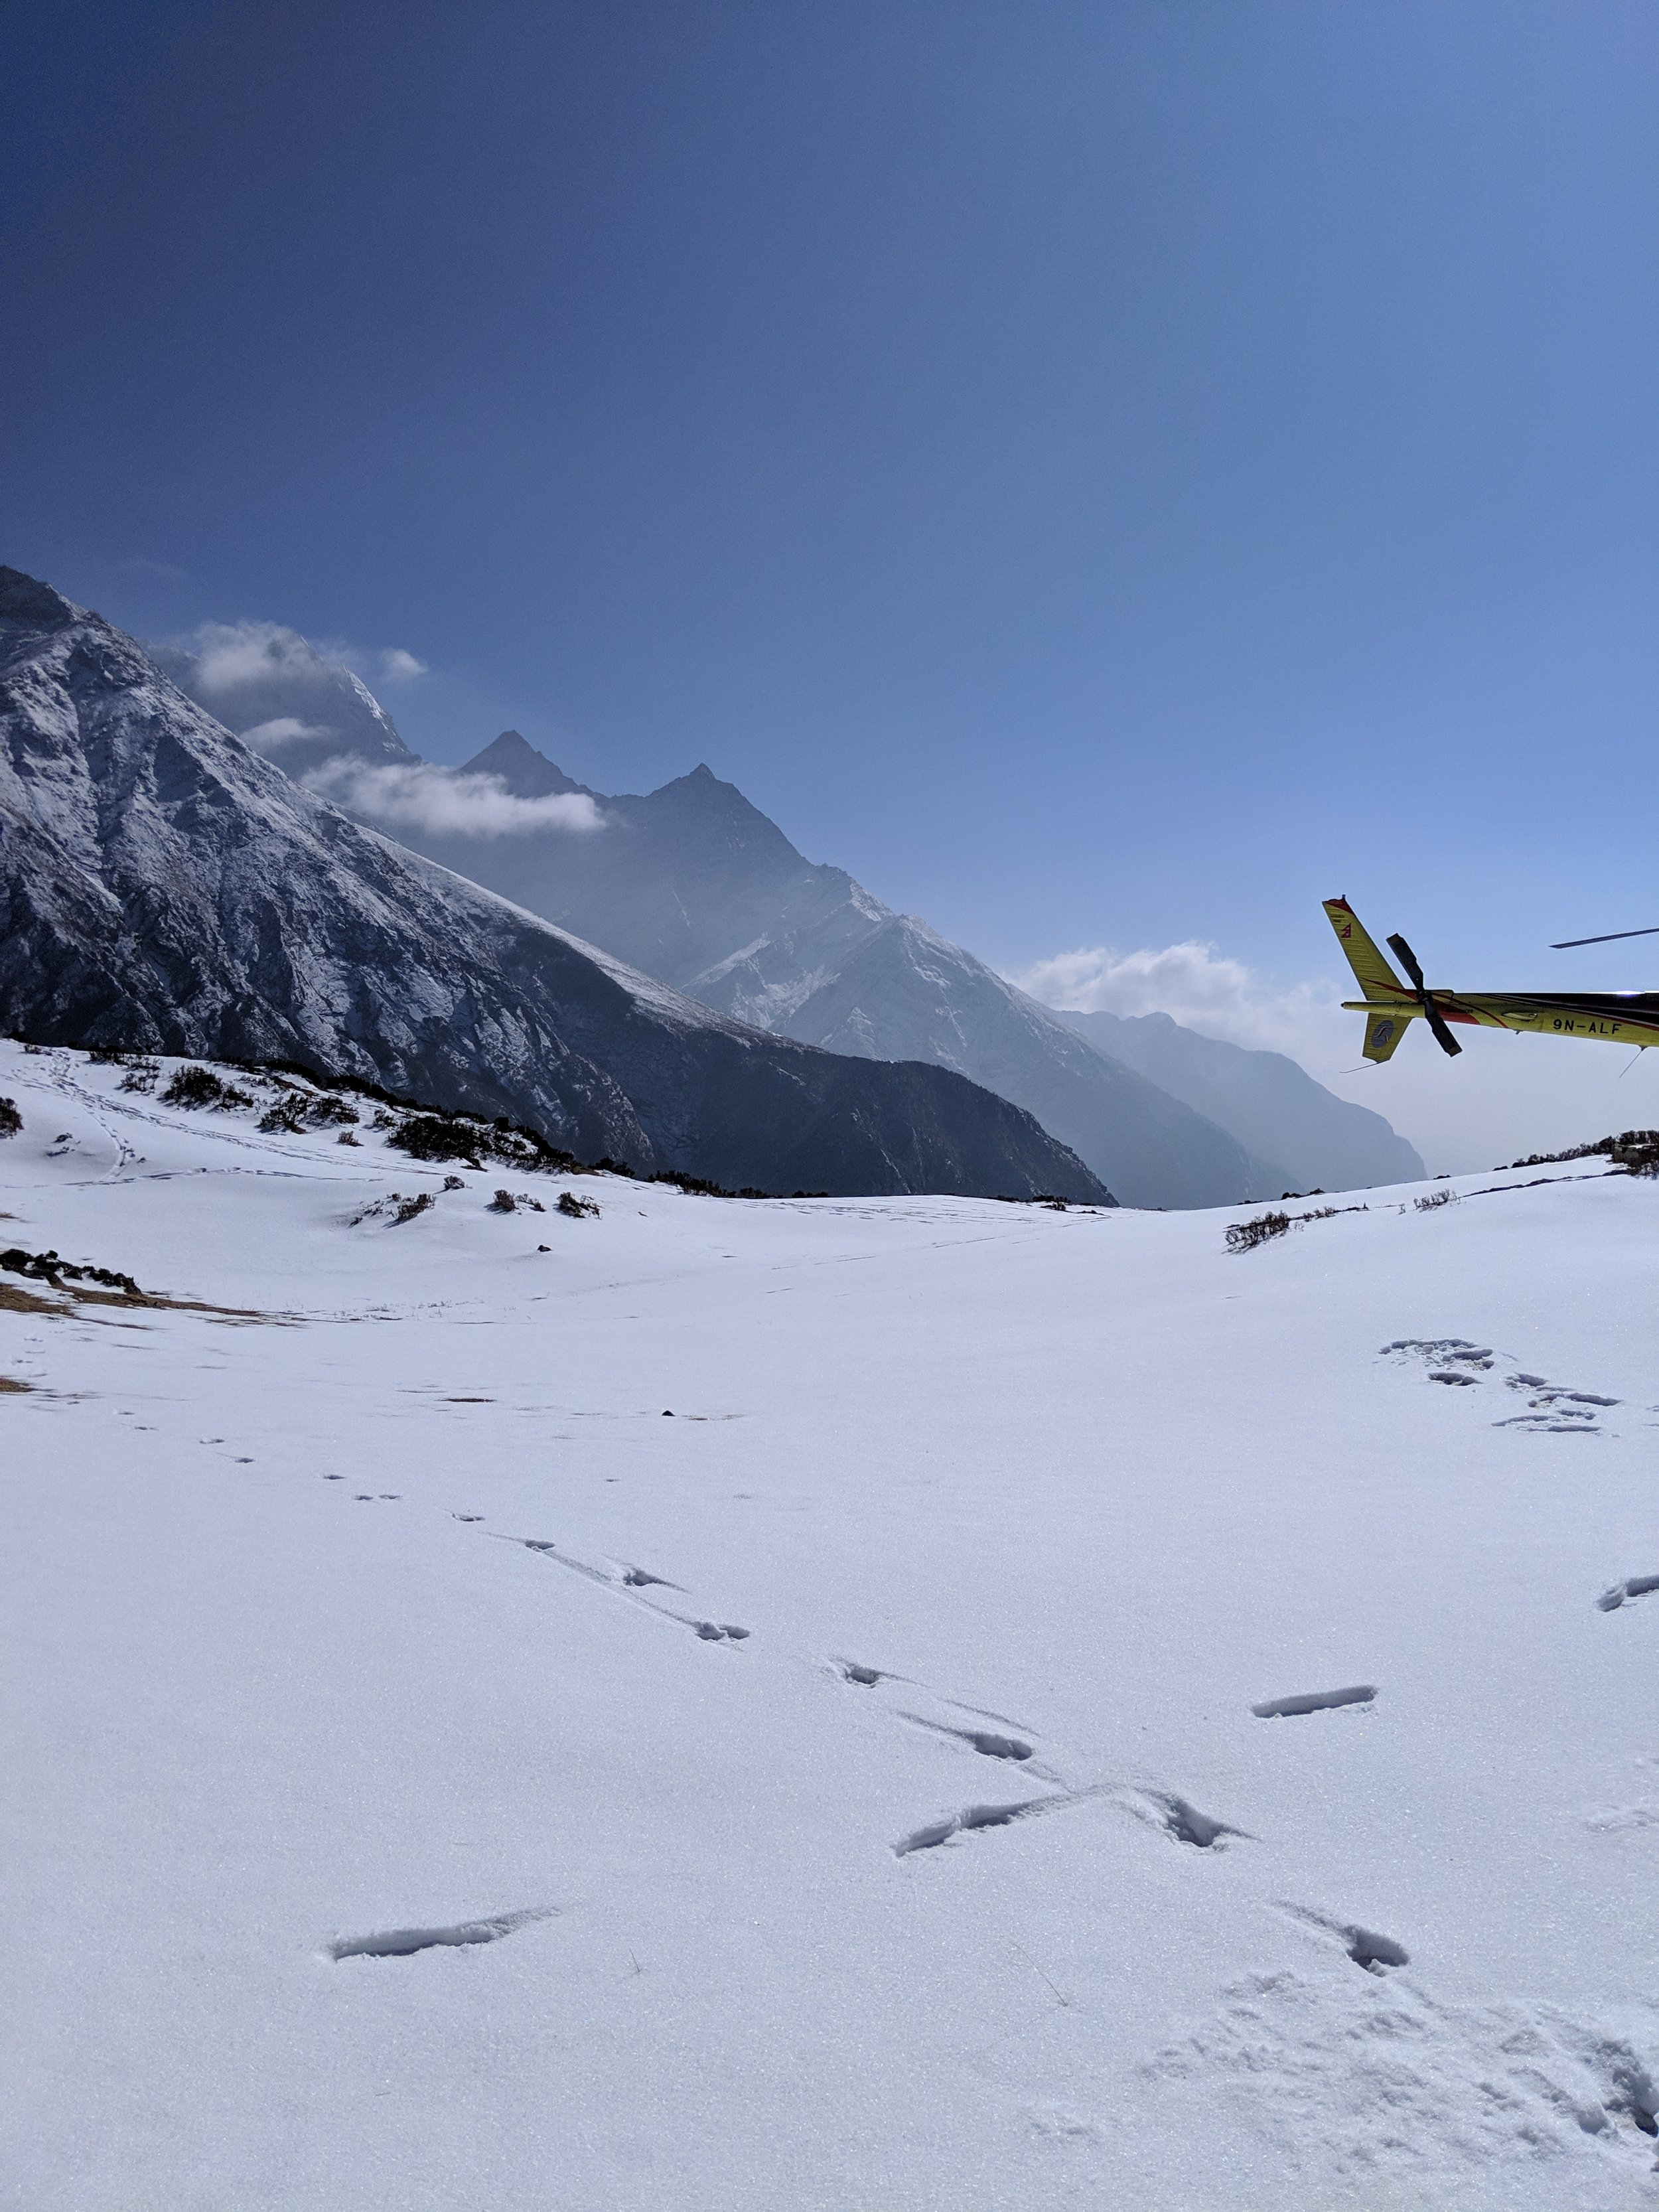 One of the best days of my life- chopper ride in the Himalayas!